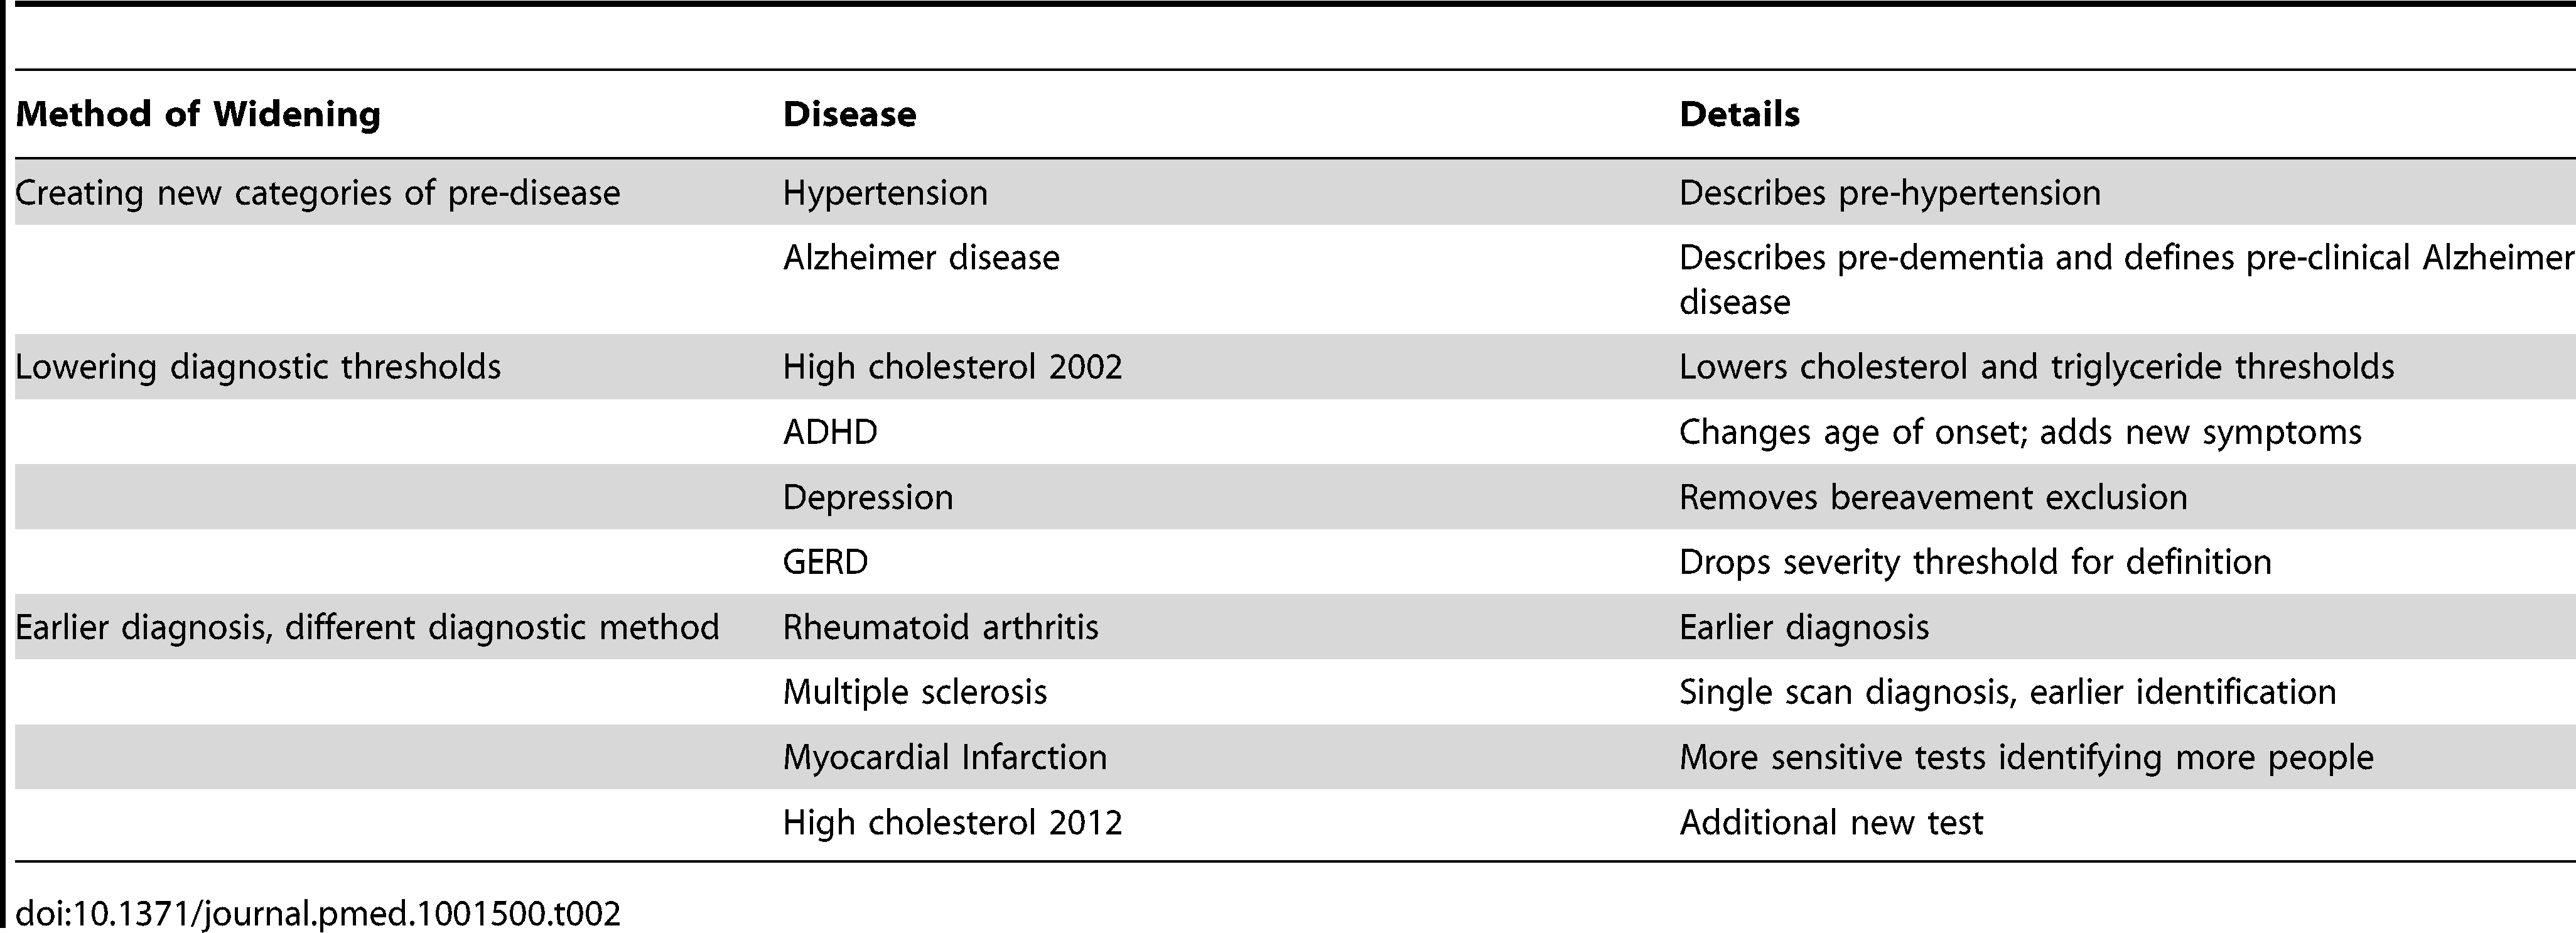 Different ways to expand disease definitions.